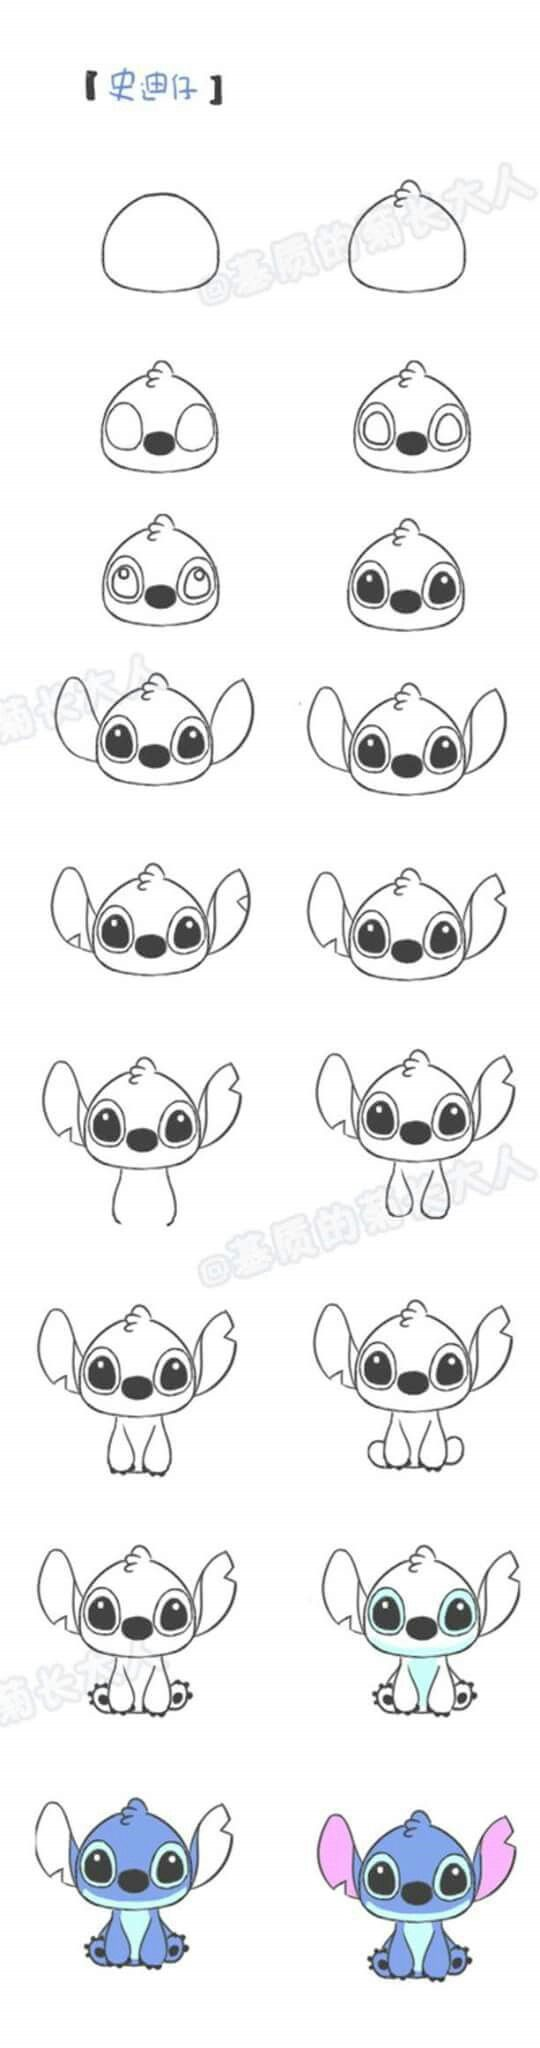 Stitch dibujo facil